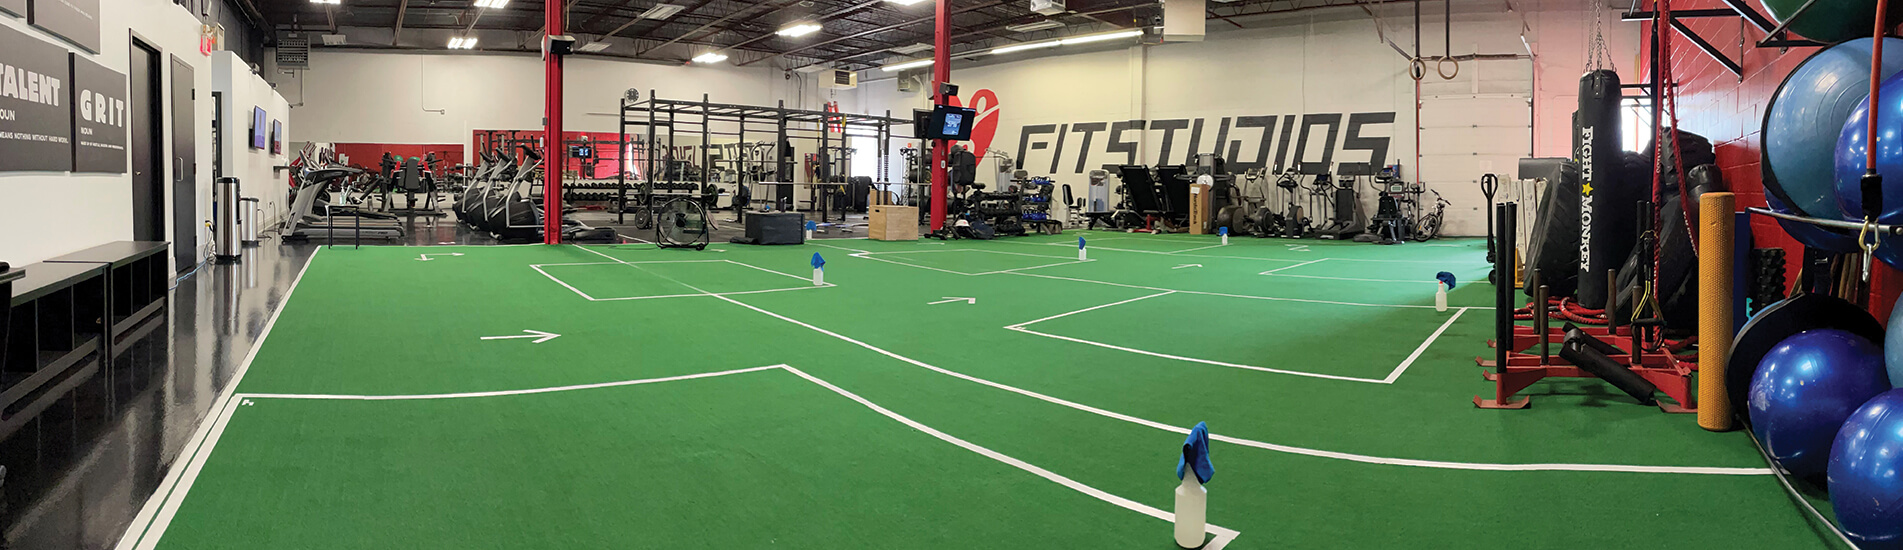 FitStudios Inc Personal Training, Hockey Fitness Training and Boot Camp Workouts